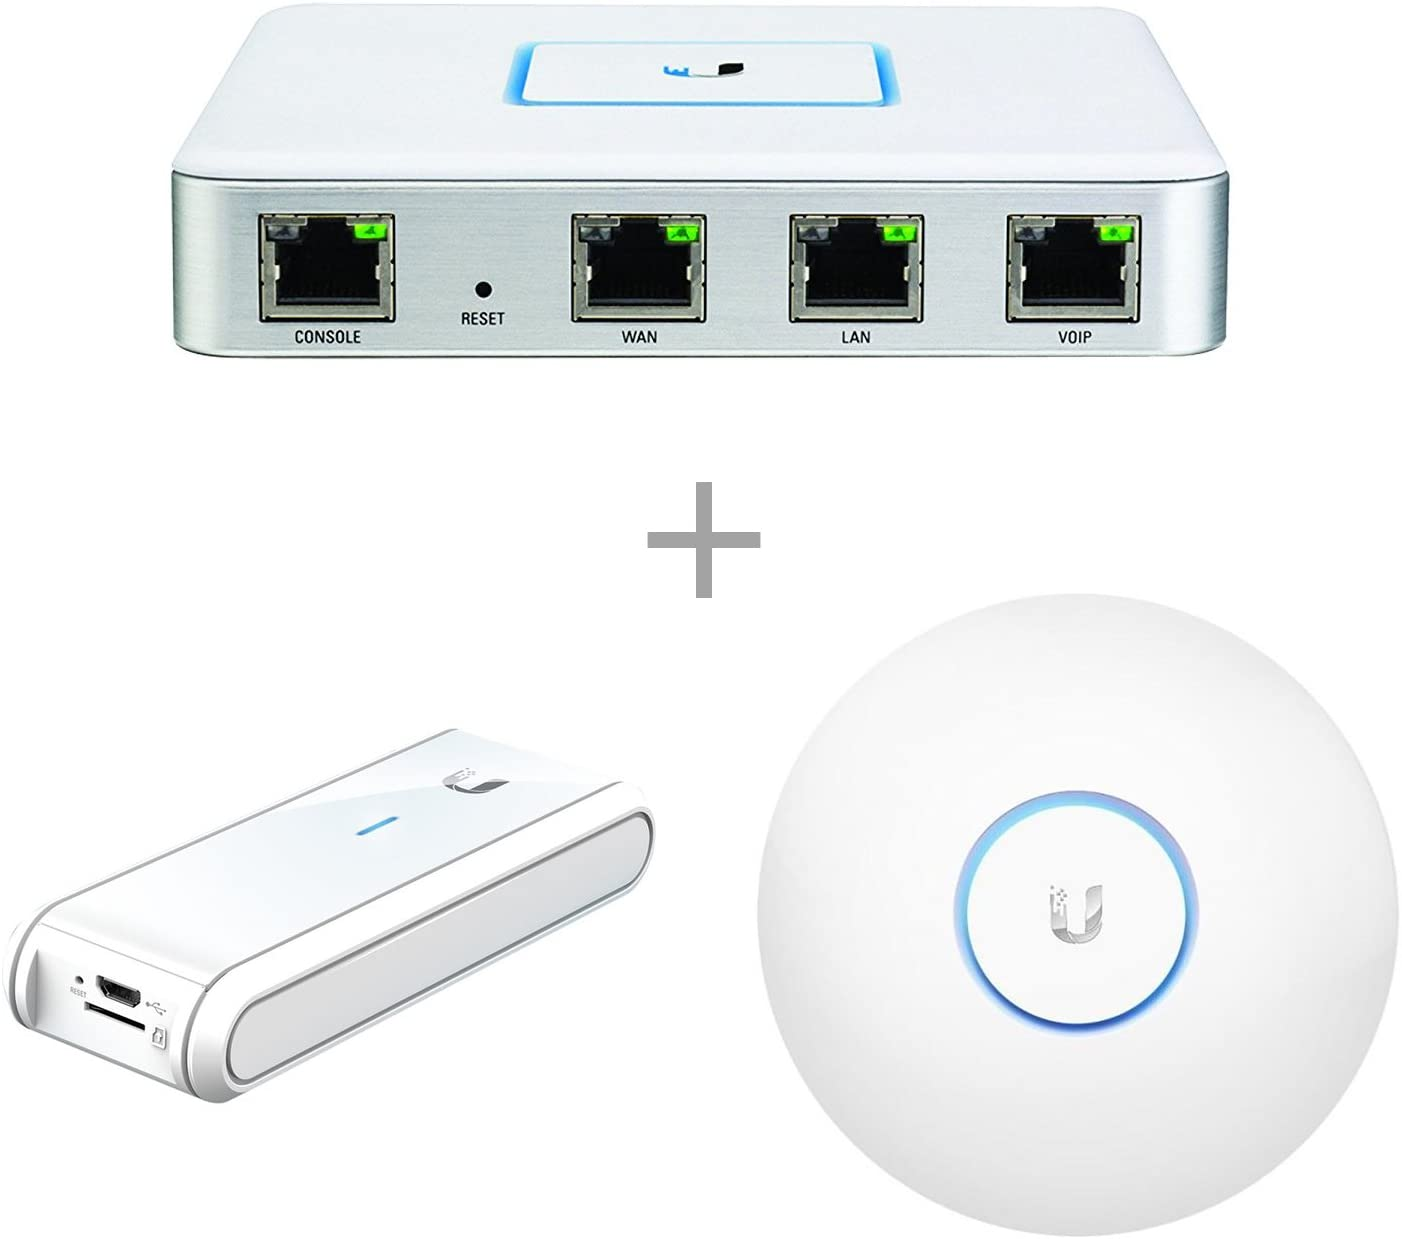 Ubiquiti Networks USG Unifi Security Gateway Bundle with Ubiquiti UC-CK Unifi Cloud Key, Remote Control Device & Ubiquiti UAP-AC-LR-US Unifi AP-AC Long Range Wireless Access Point